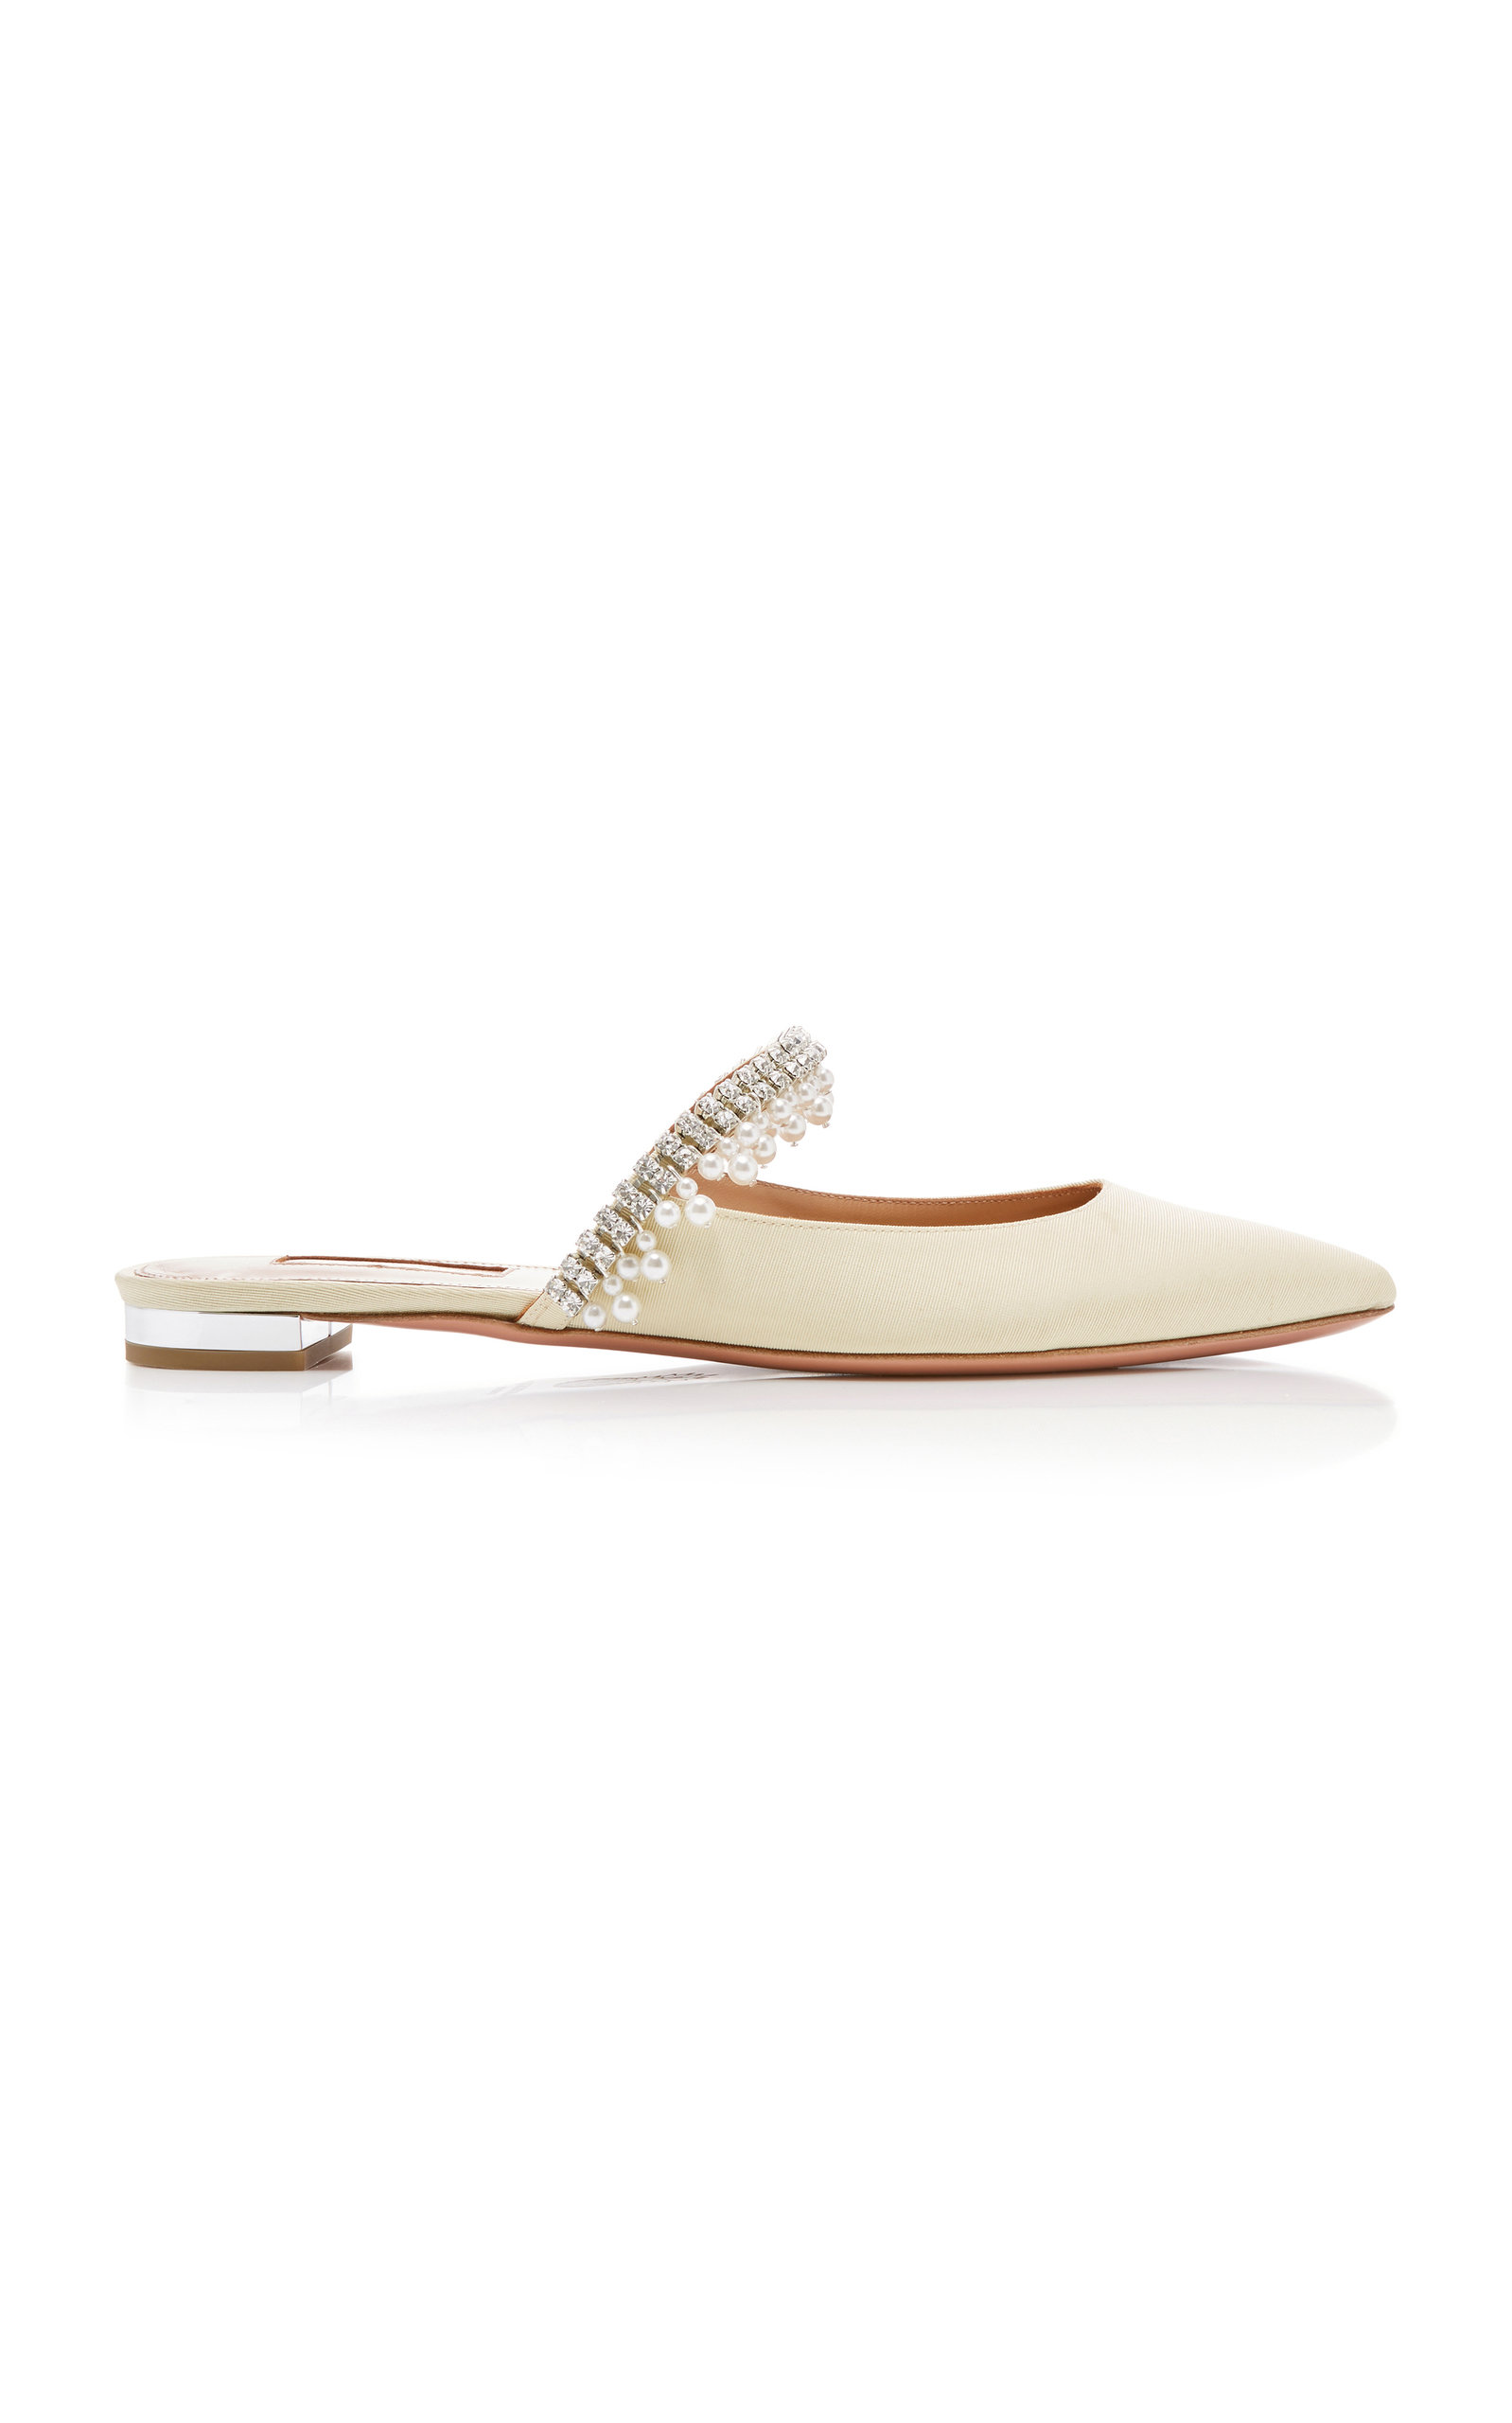 Aquazzura Slippers Exquisite Crystal-Embellished Leather Slide